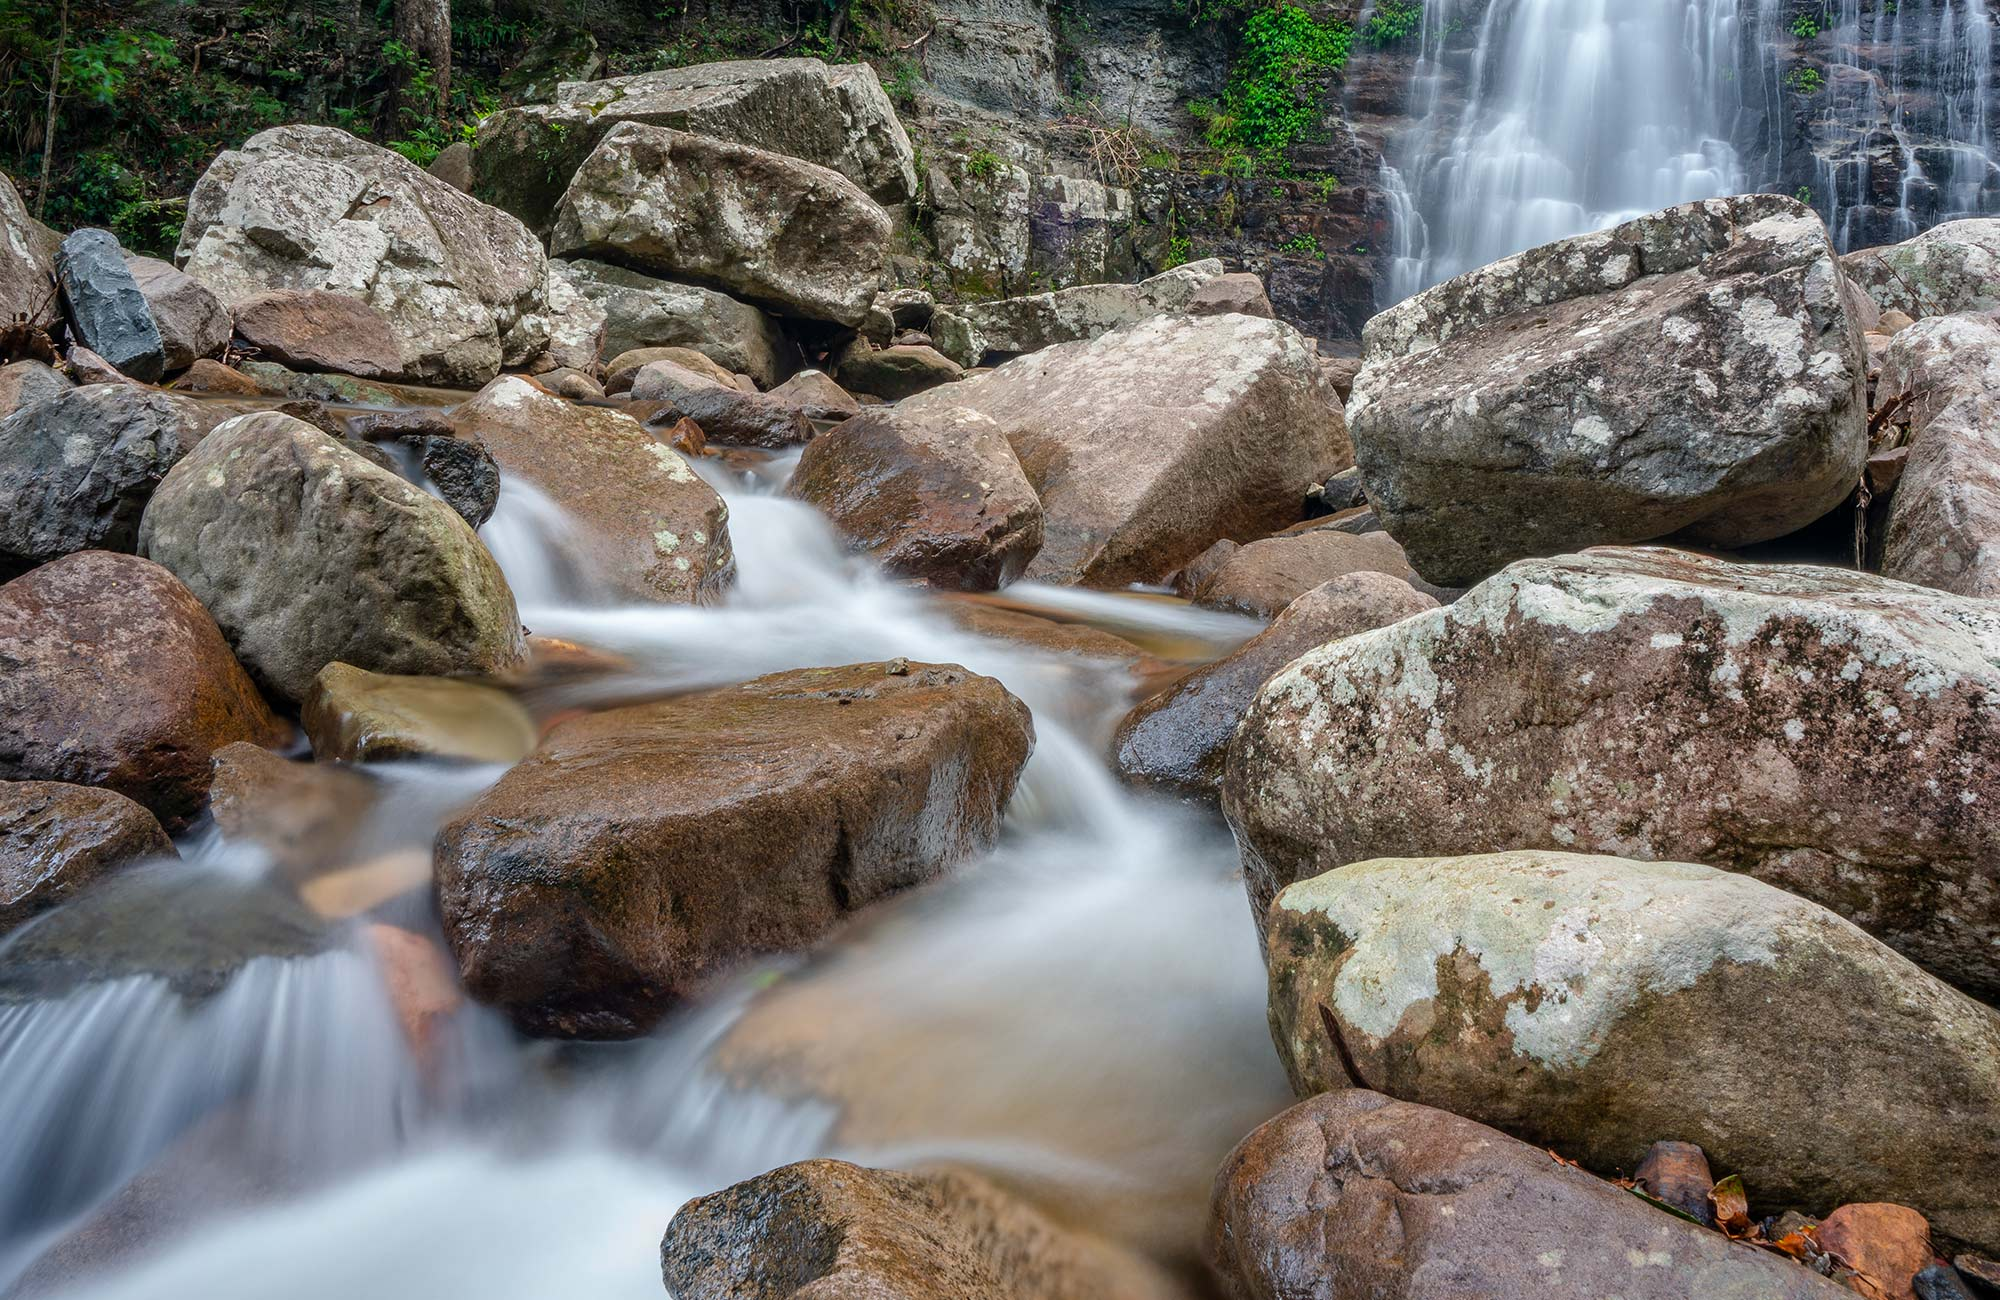 Water rushes over rocks below Minnamurra Falls in Budderoo National Park. Photo credit: John Spencer © DPIE